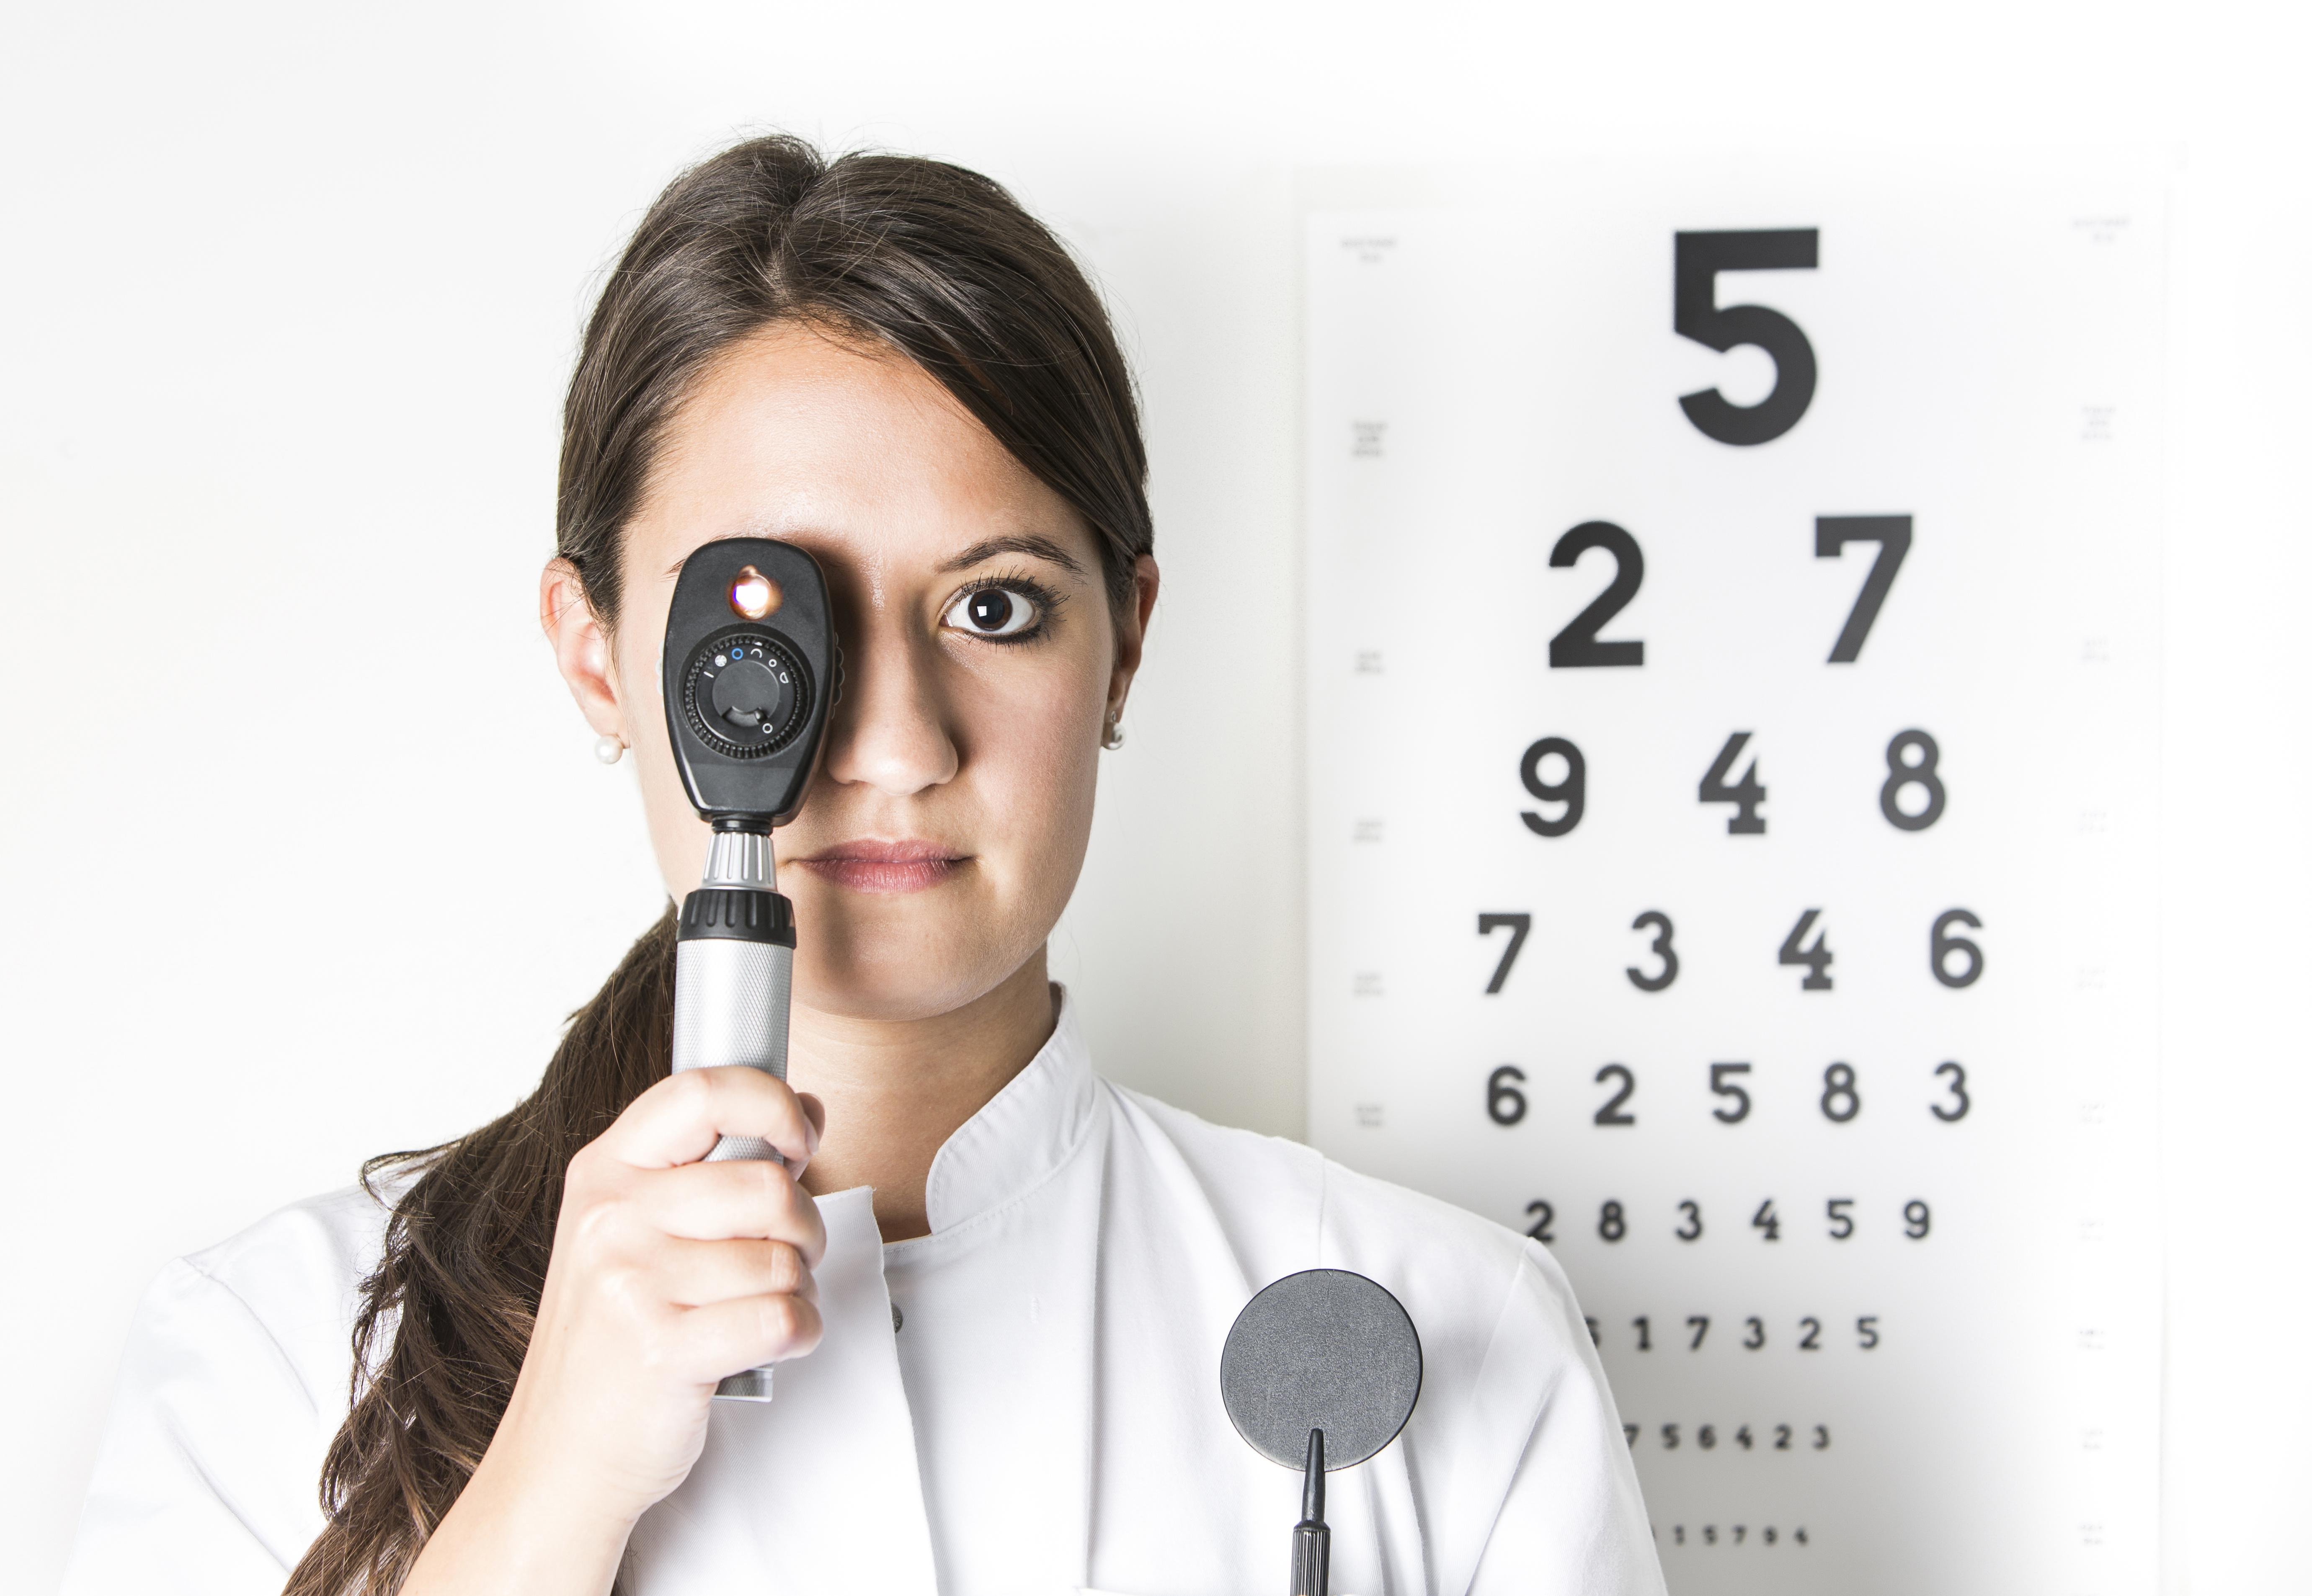 Portrait of young woman looking through ophthalmoscope, close up